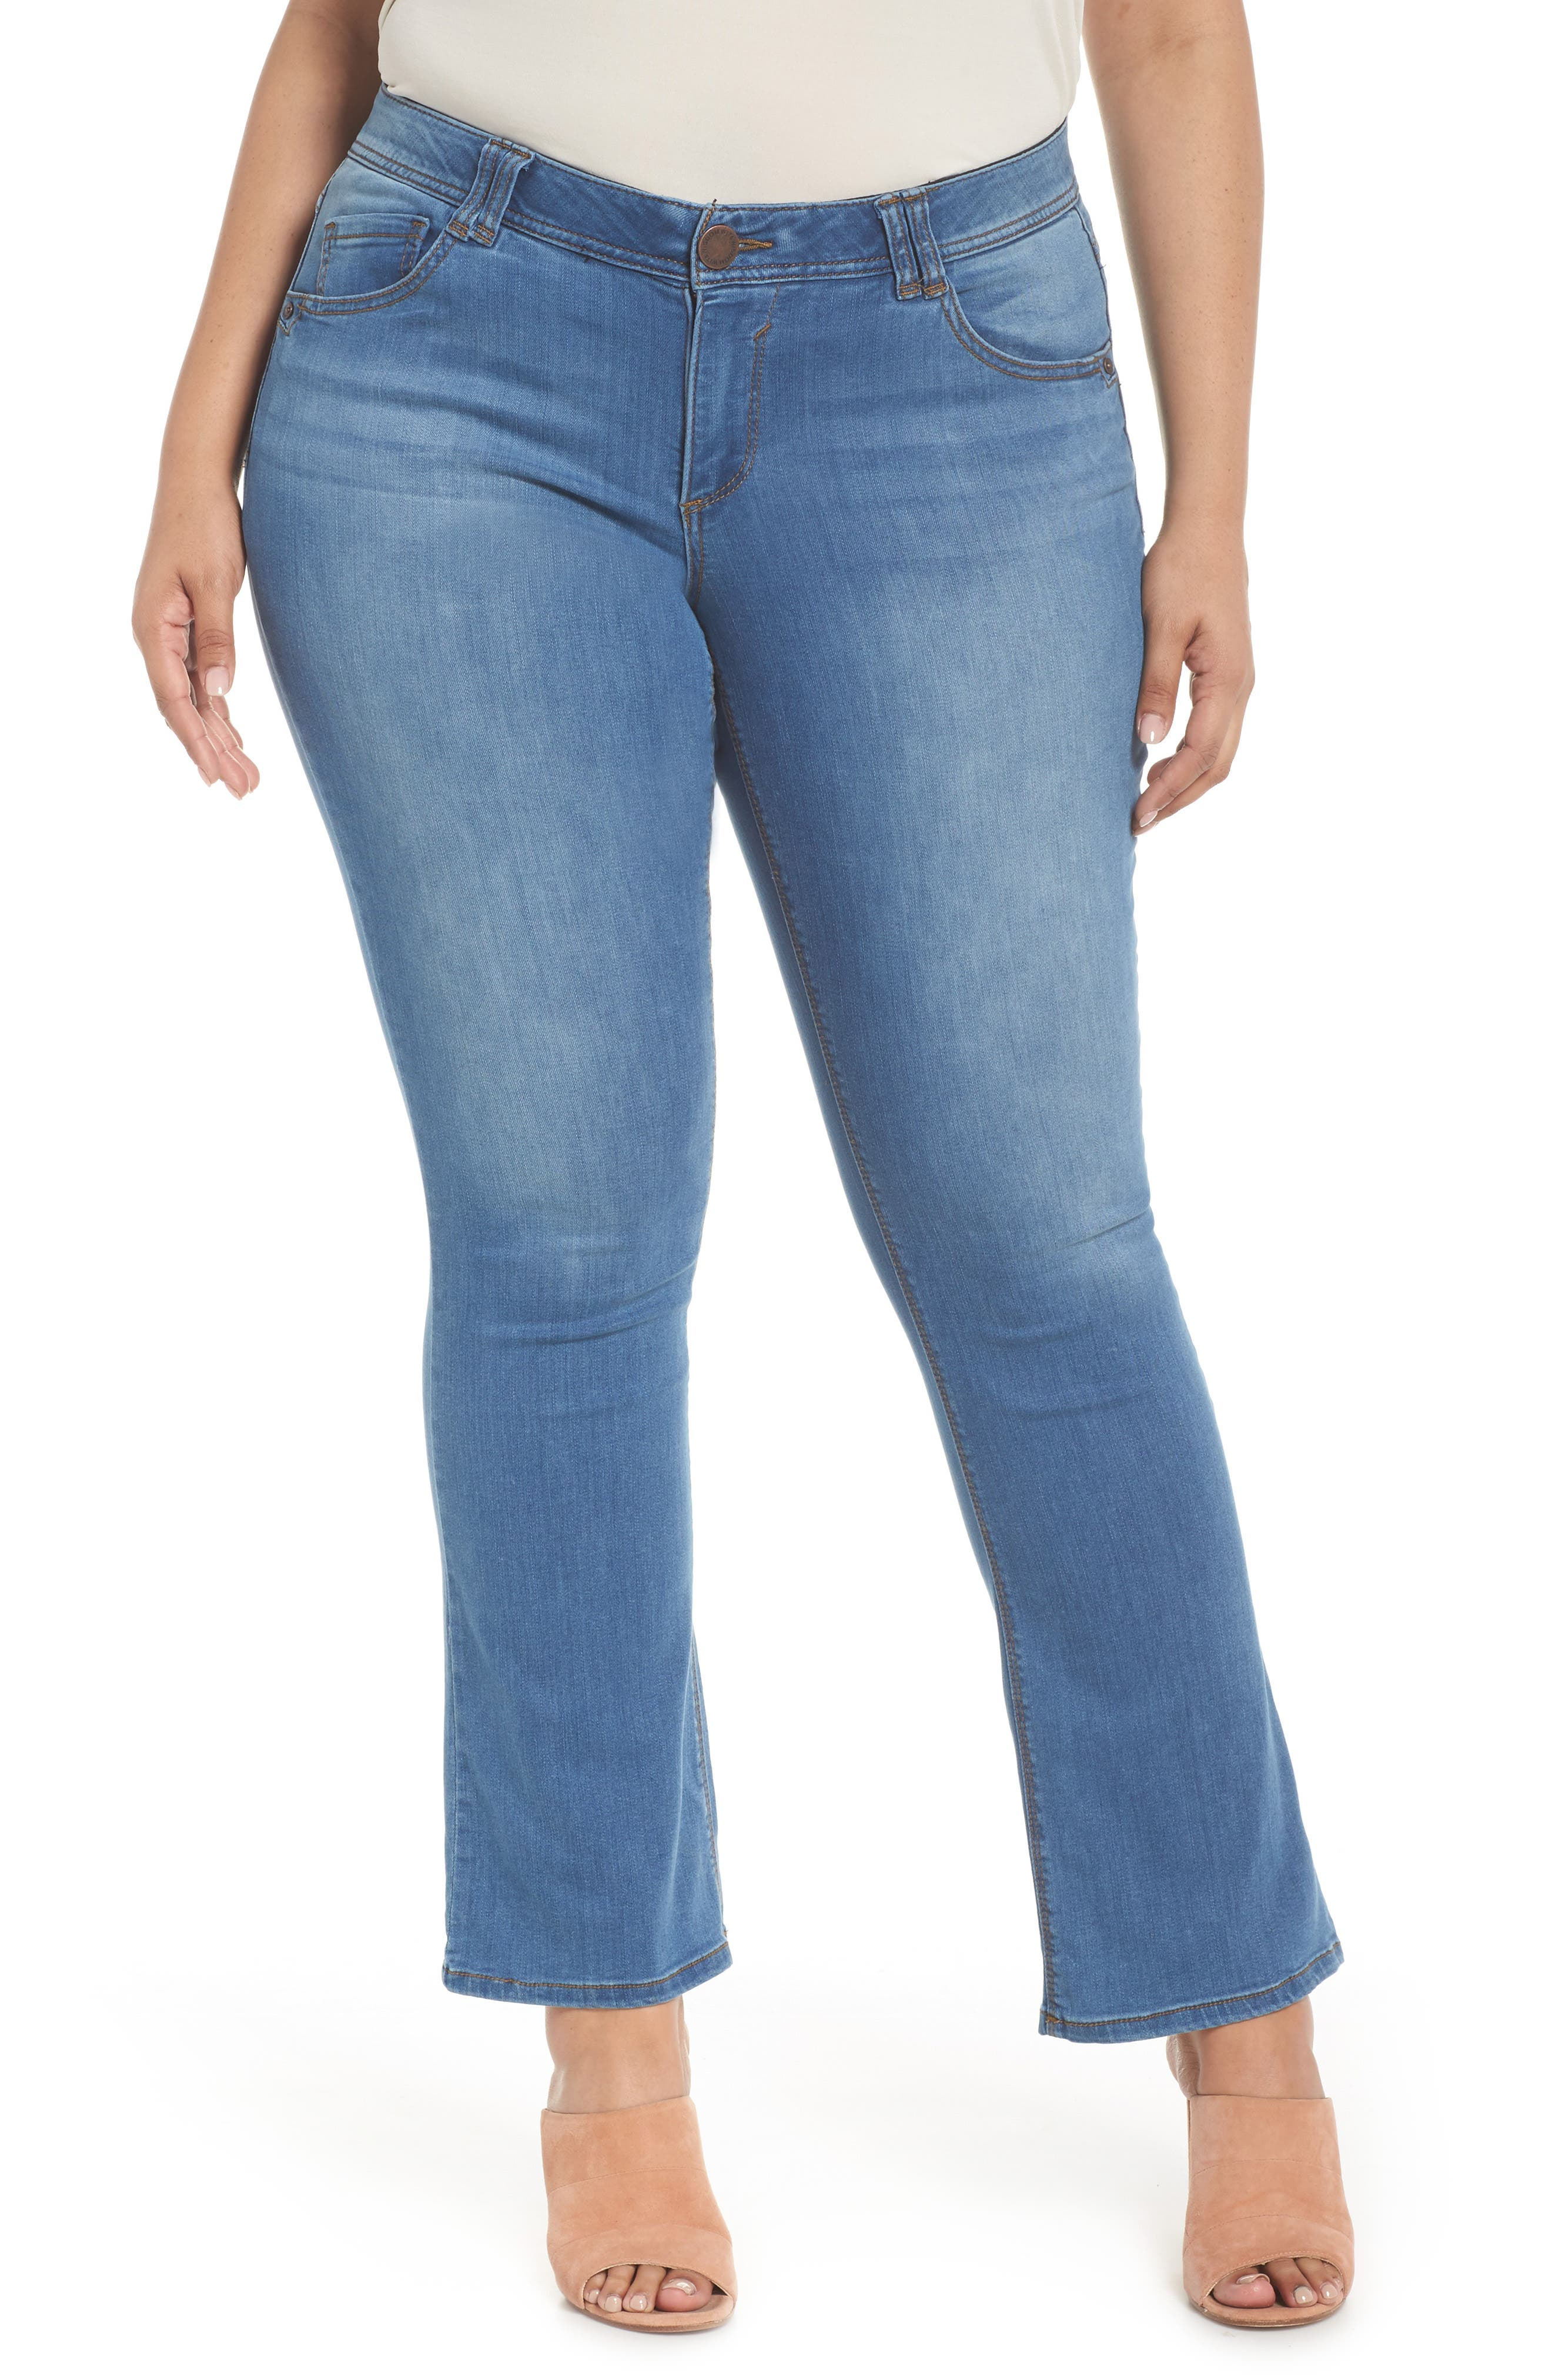 WIT & WISDOM, Ab-solution Luxe Touch Bootcut Jeans, Main thumbnail 1, color, LIGHT BLUE